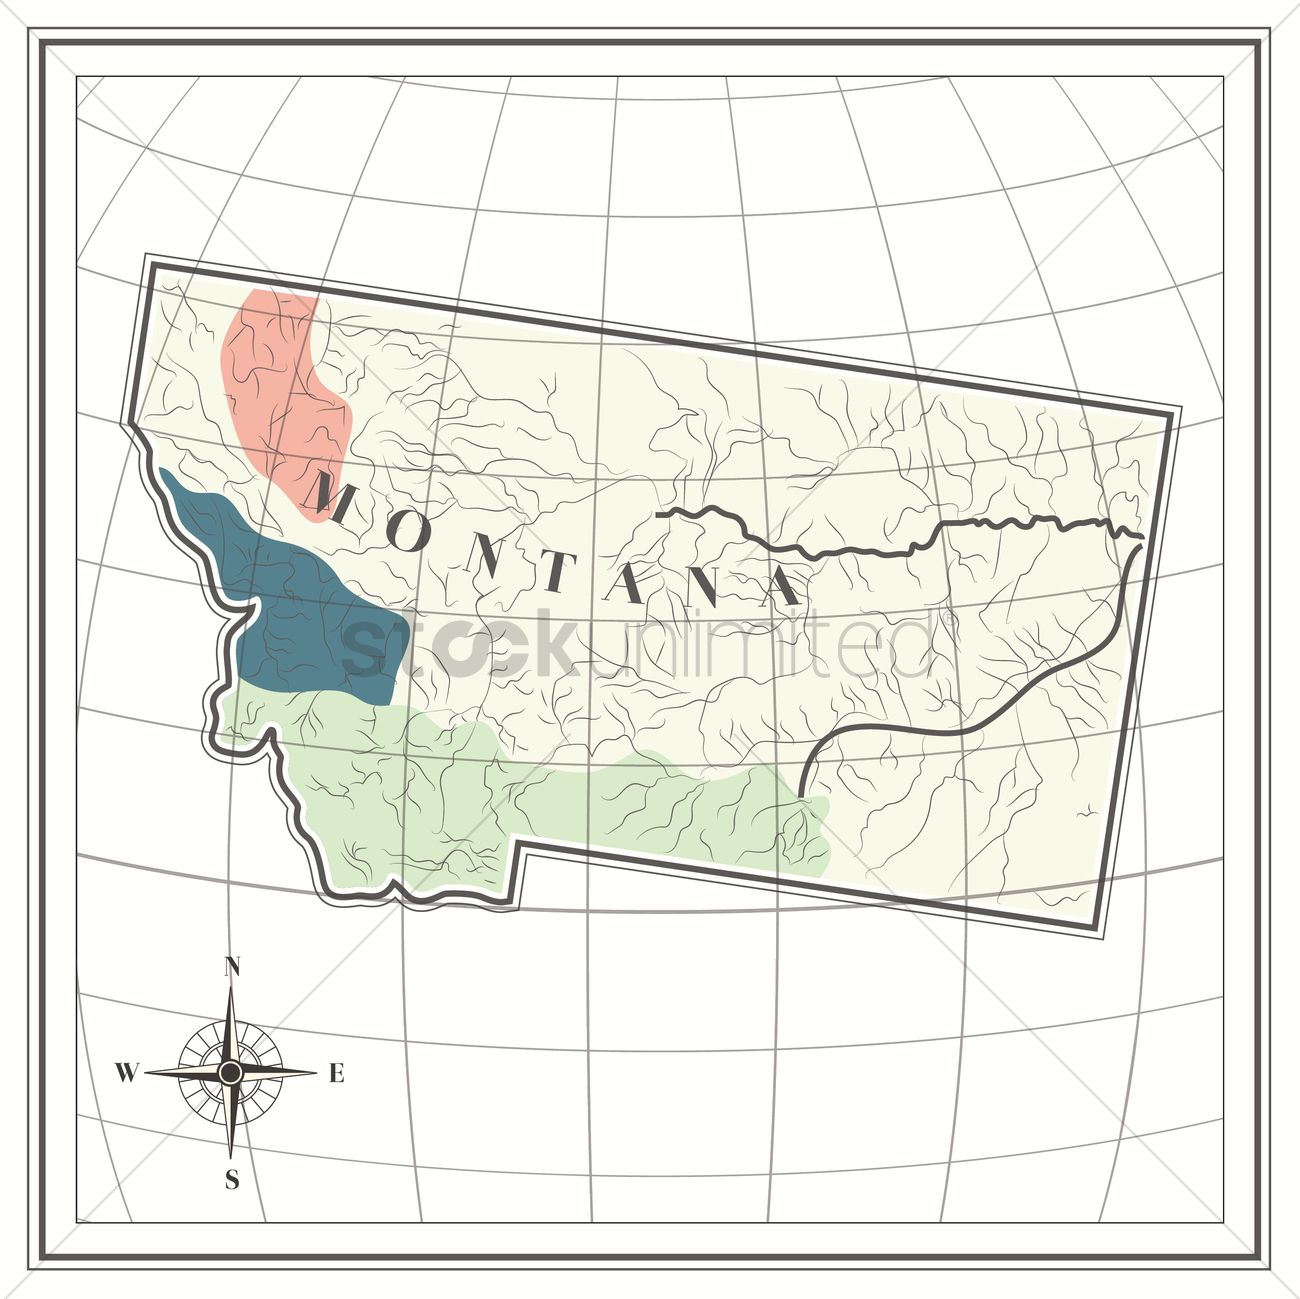 Map of montana state Vector Image - 1535355 | StockUnlimited Montana Usa Map With Compas Rose on